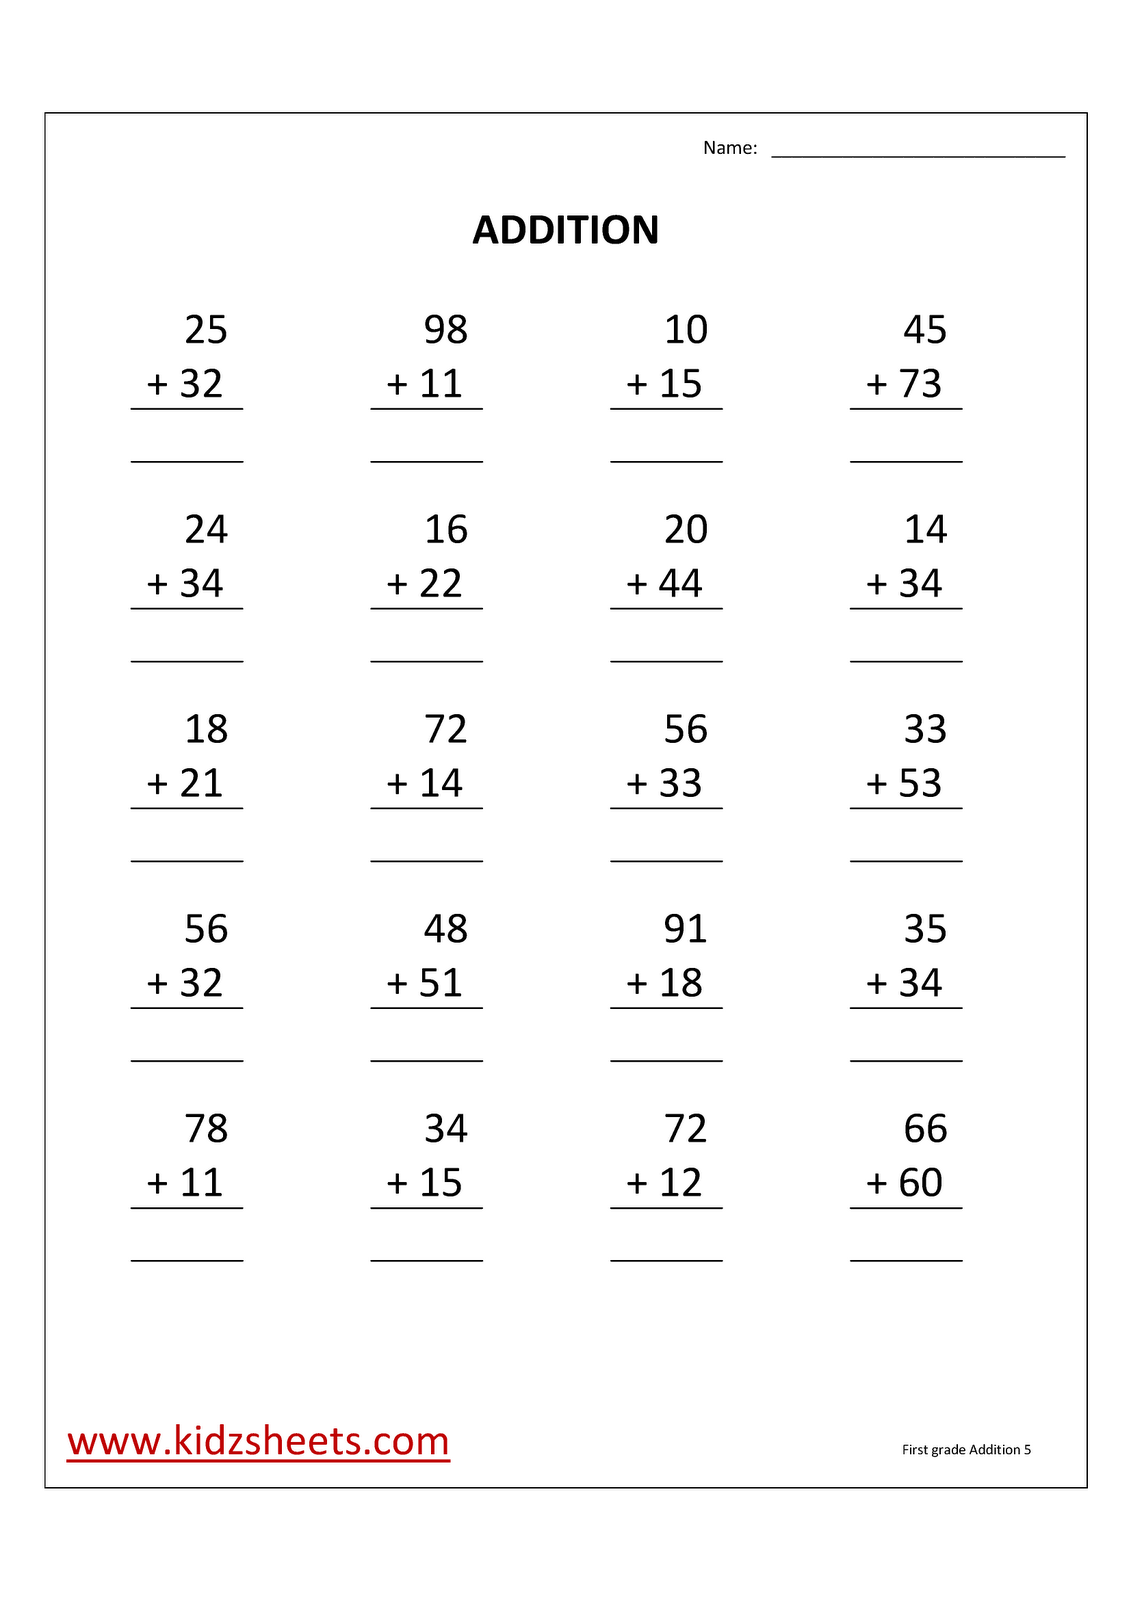 Kidz Worksheets First Grade Addition Worksheet5 – Addition Worksheets for First Grade